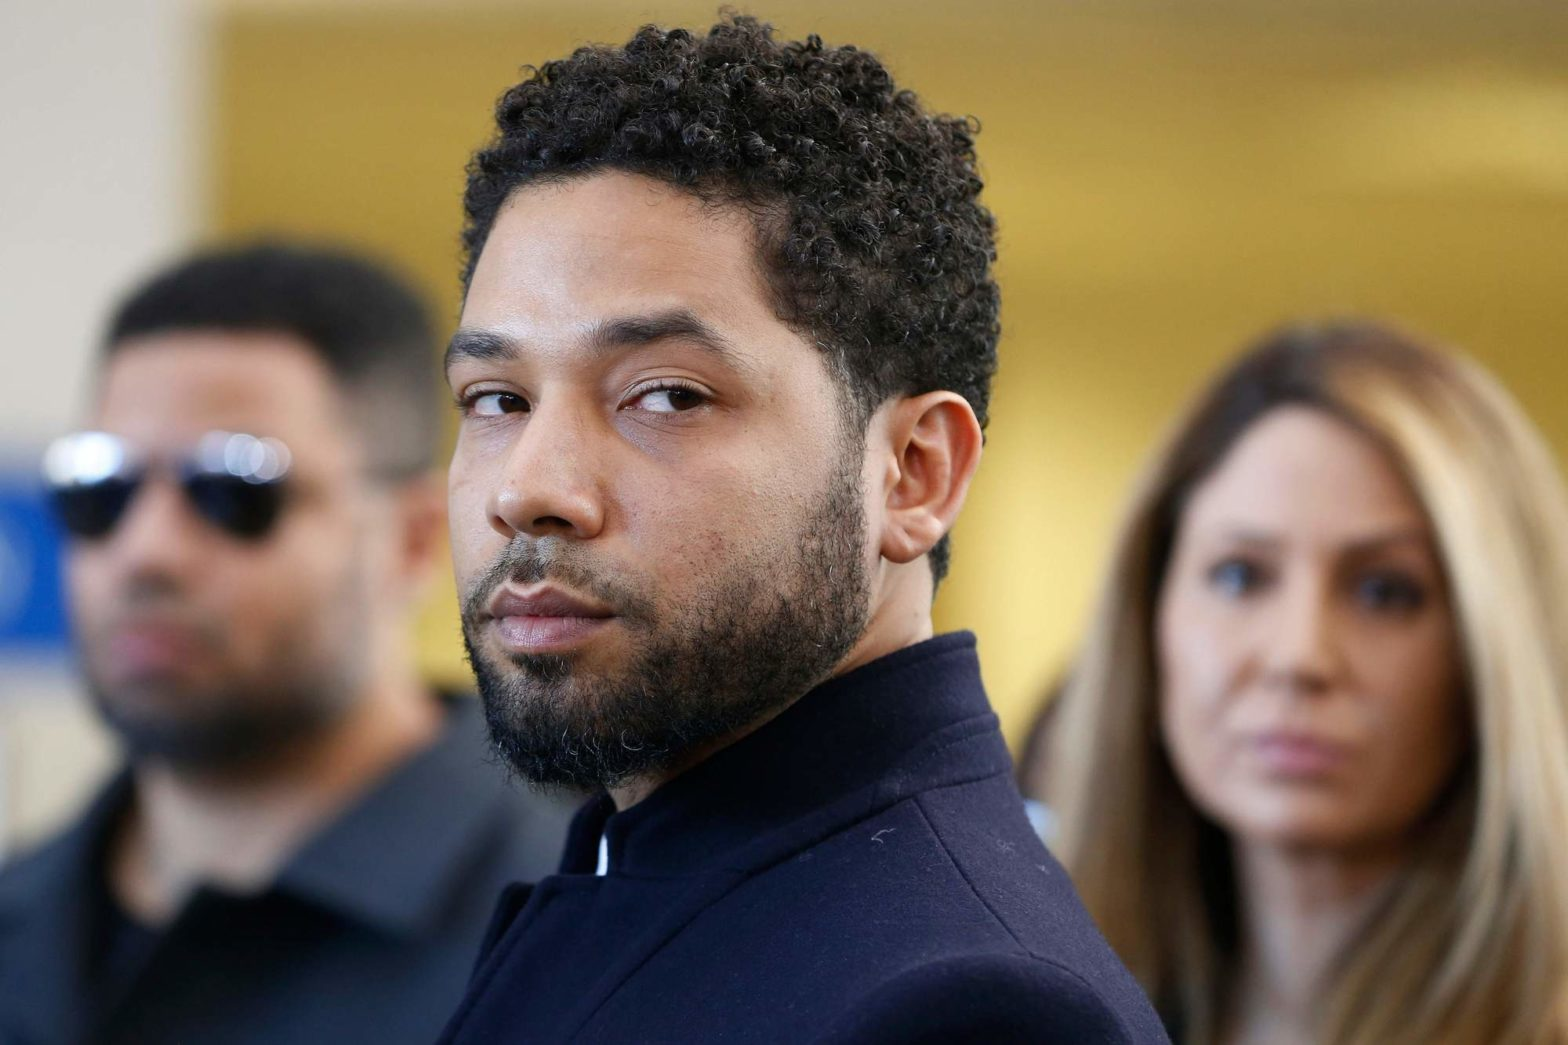 Jussie Smollett: Arrogance Made Actor Chicago's Public Enemy No. 1